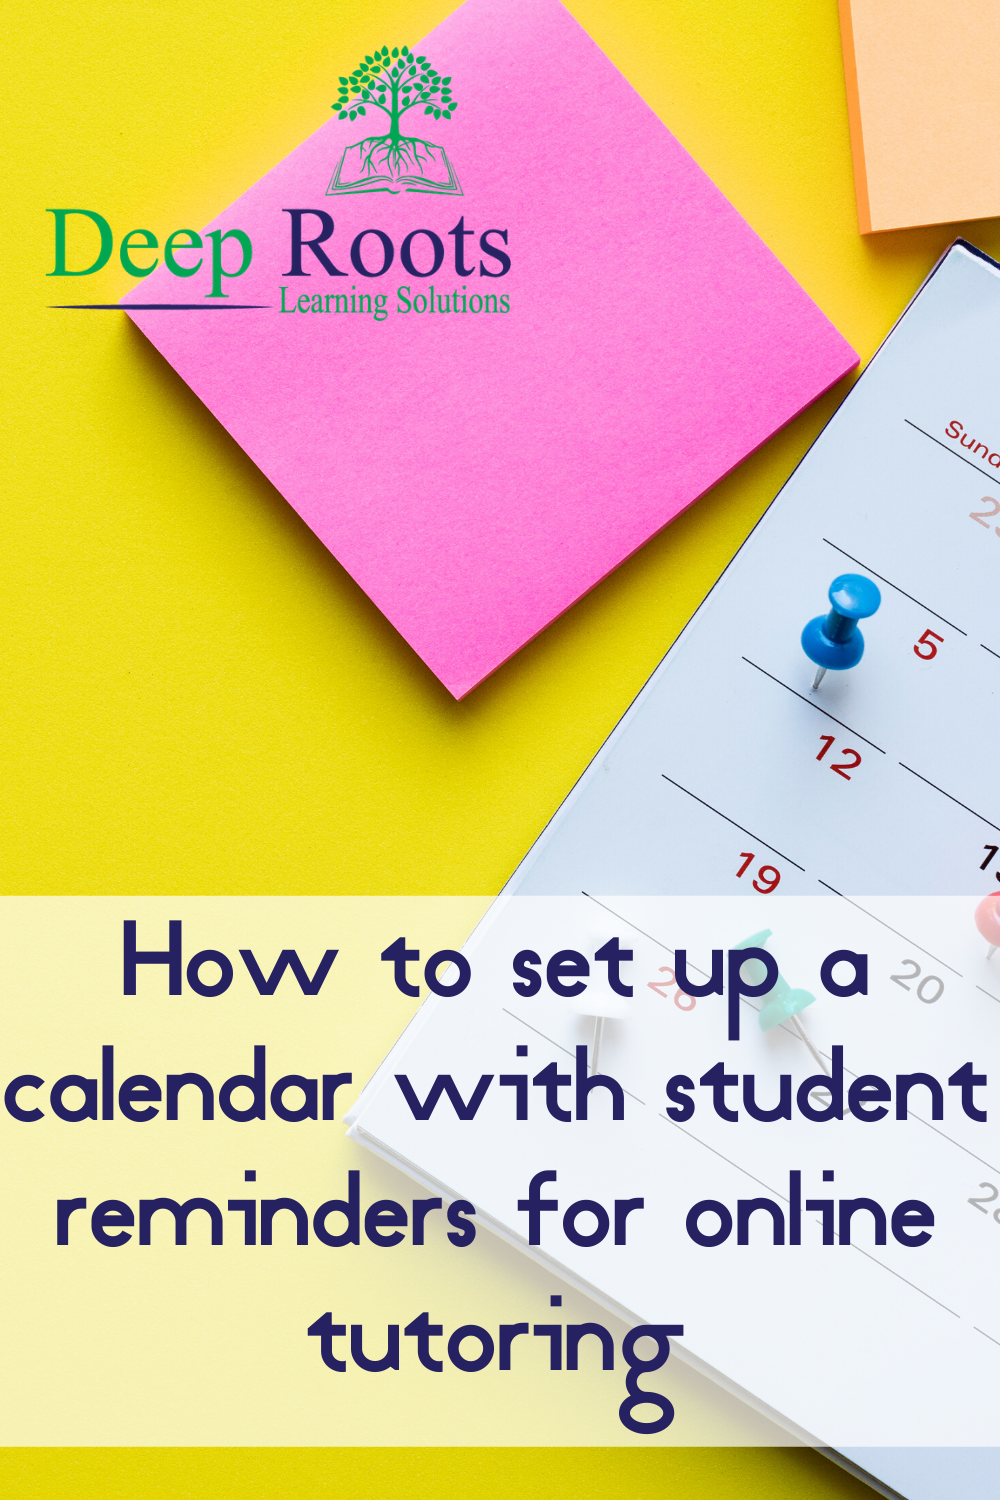 Title: How to set up a calendar with student reminders for online tutoring